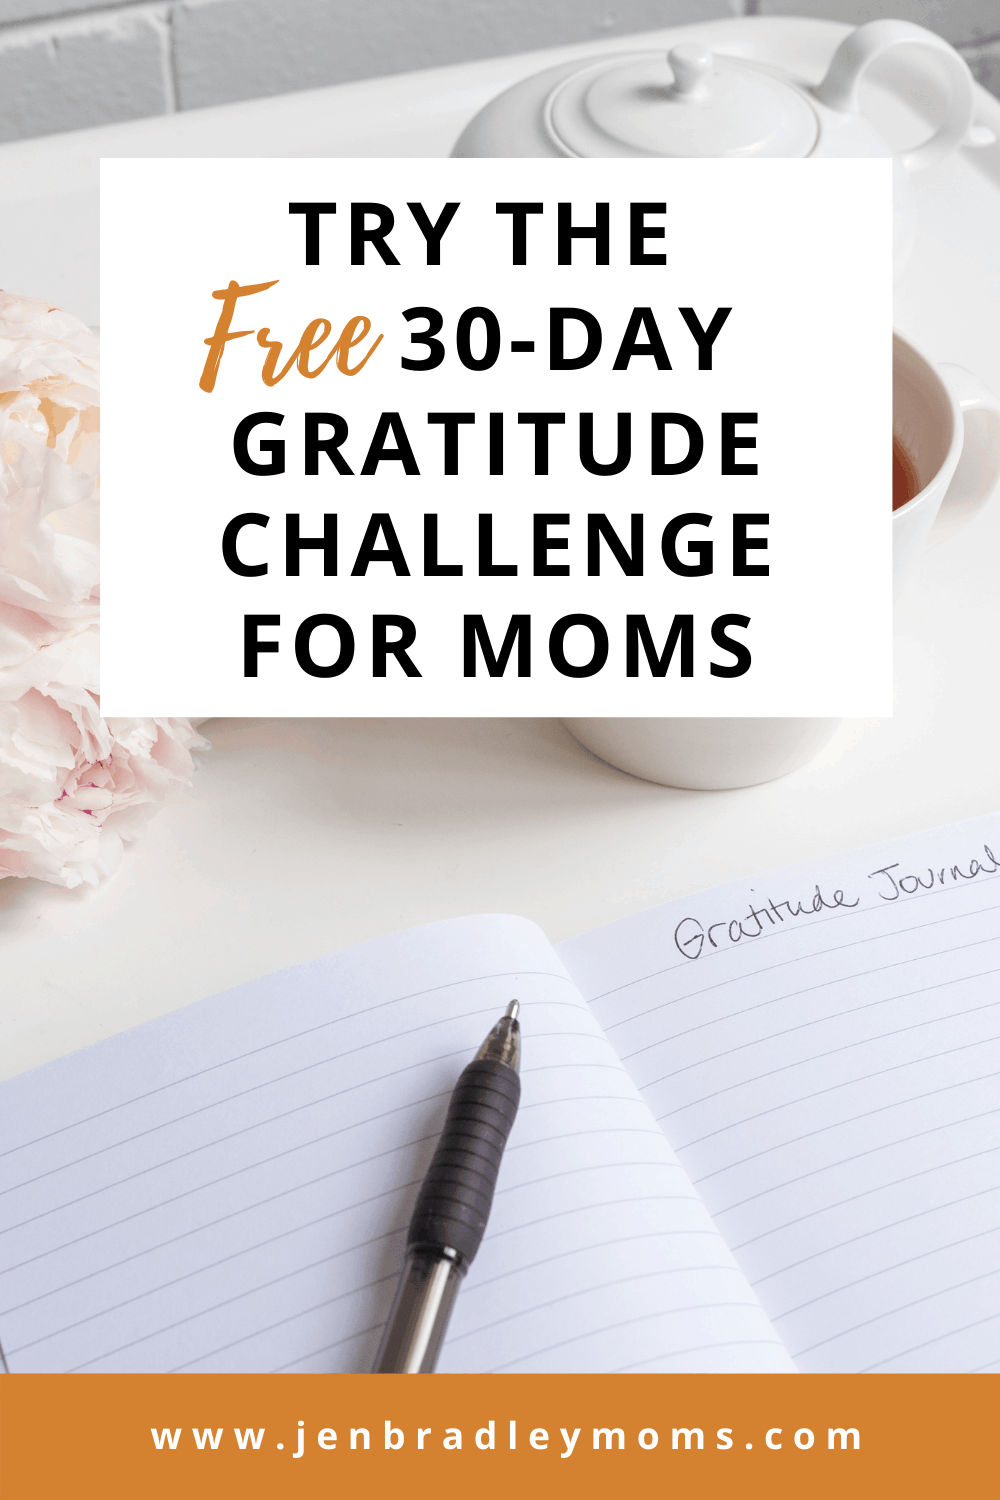 Try the Perfect 30-Day Gratitude Challenge for Moms